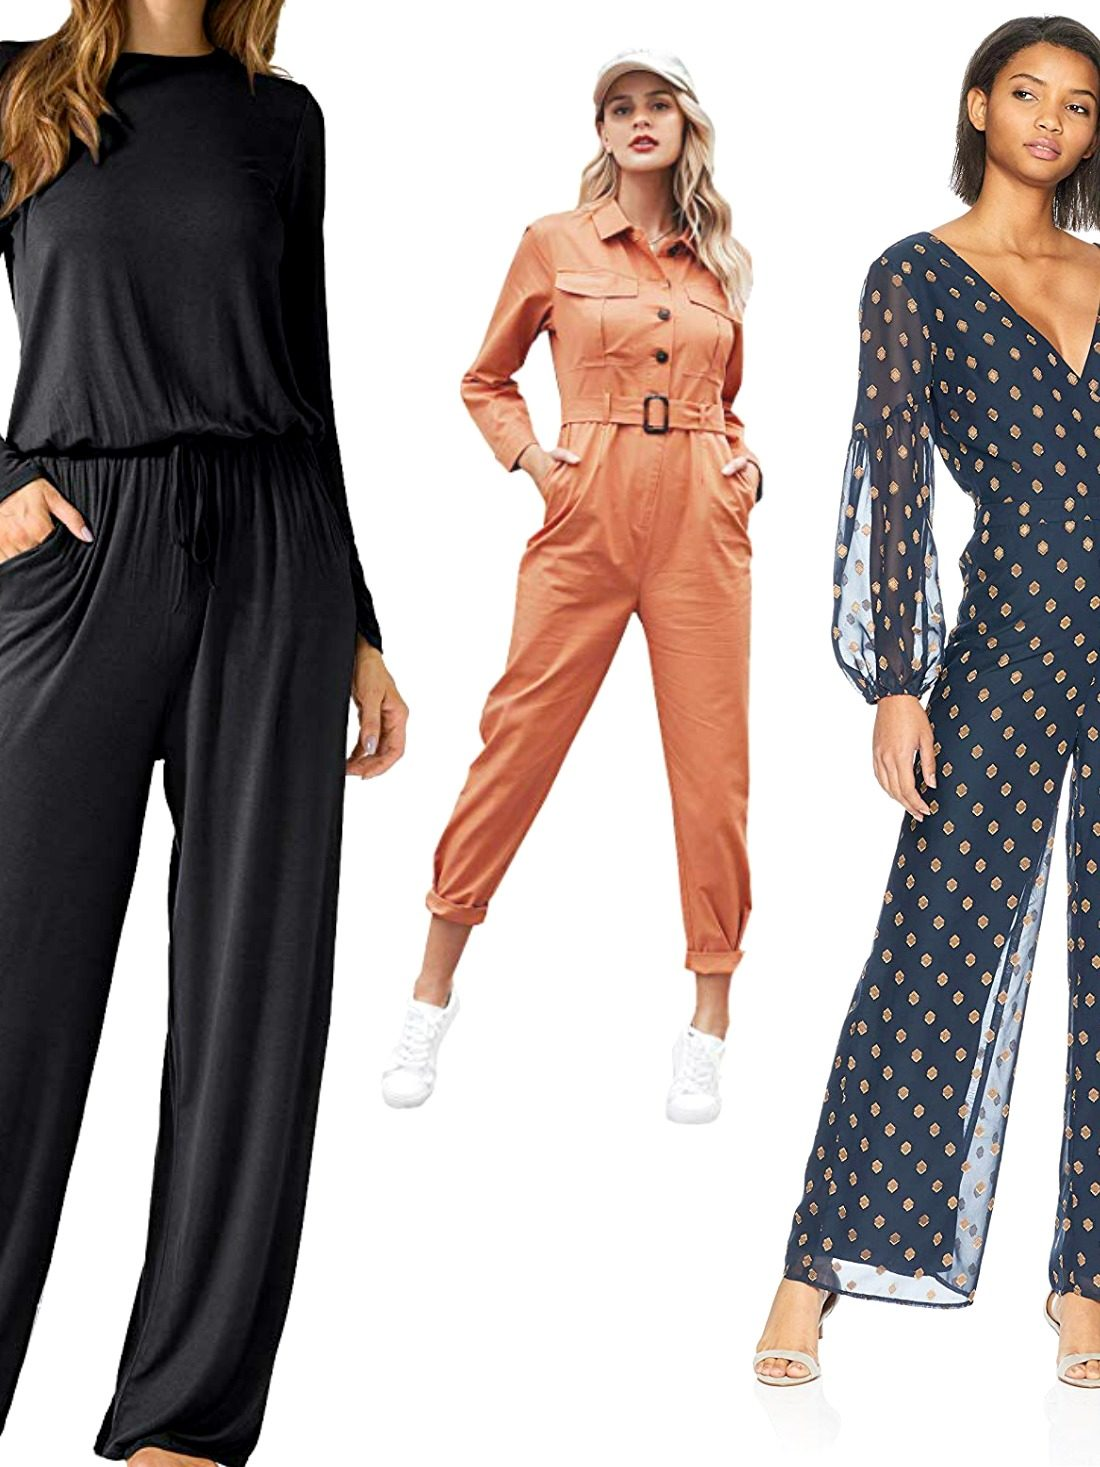 When you want something chicer than a dress, a playsuit saves the day! Get a peek of our best long sleeve jumpsuit that works for fun and the office.